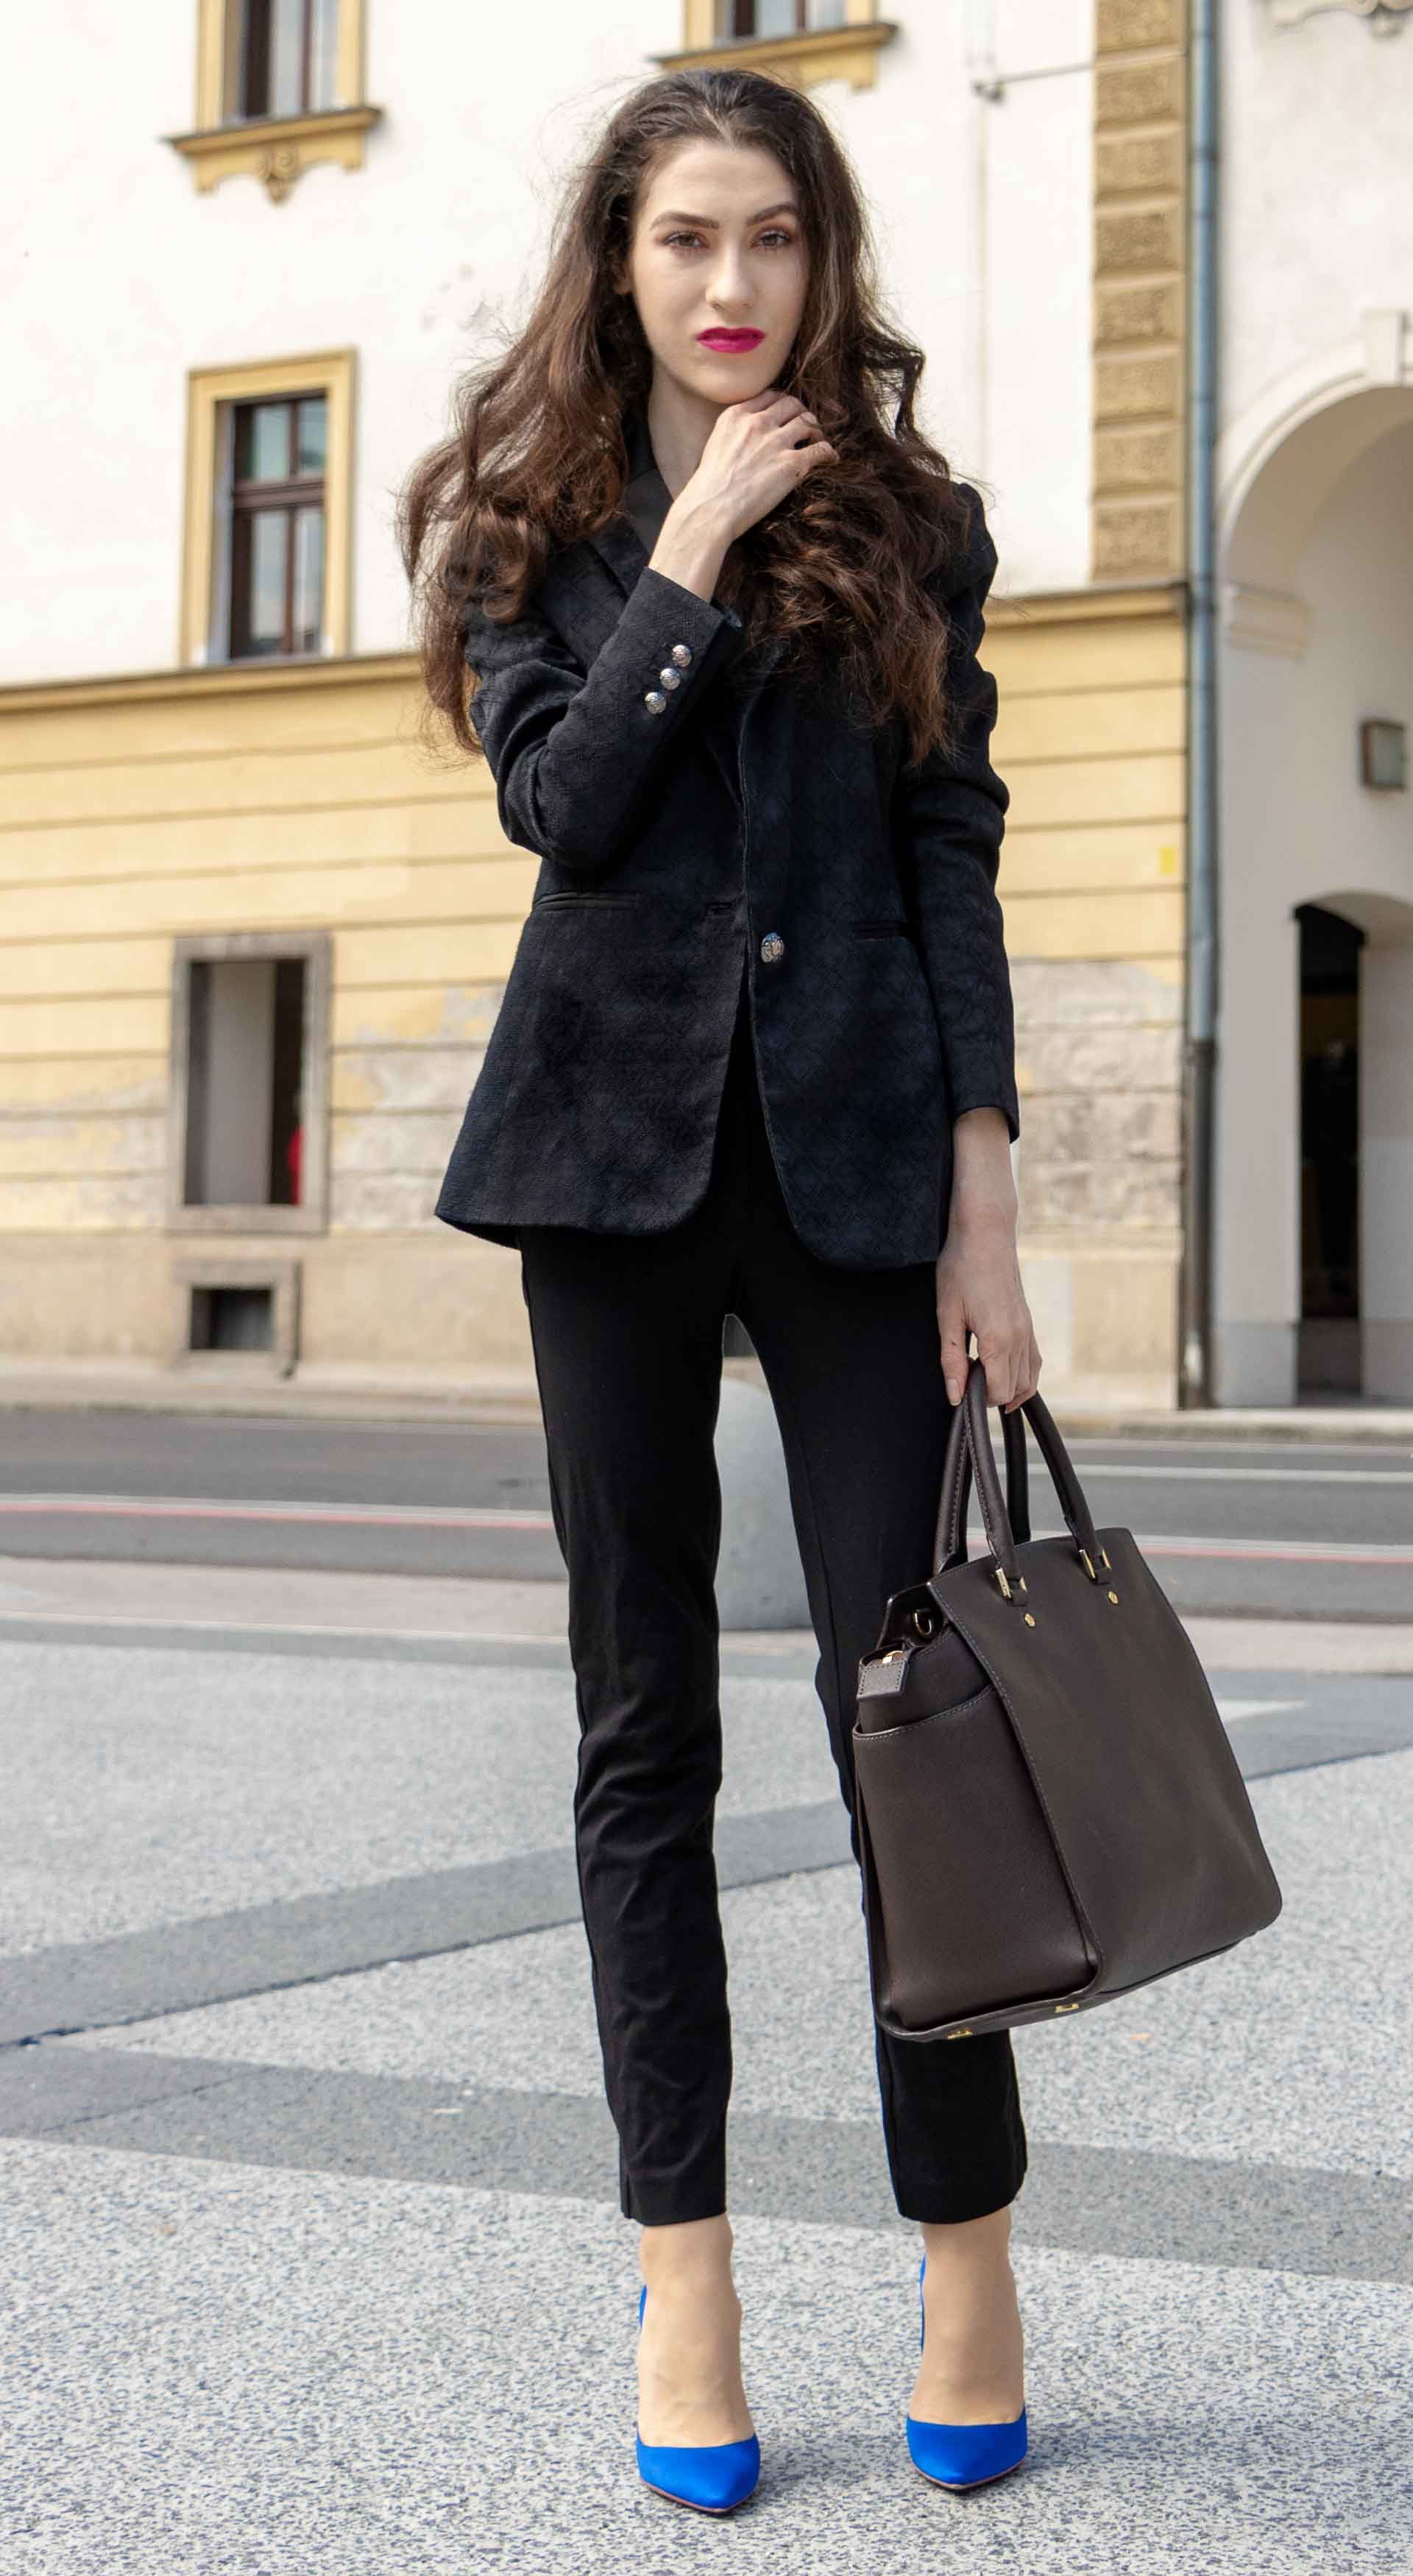 Beautiful Slovenian Fashion Blogger Veronika Lipar of Brunette from Wall wearing black pantsuit, brown Michael Kors selma top handle tote bag, Gianvito Rossi blue satin courts for work in autumn